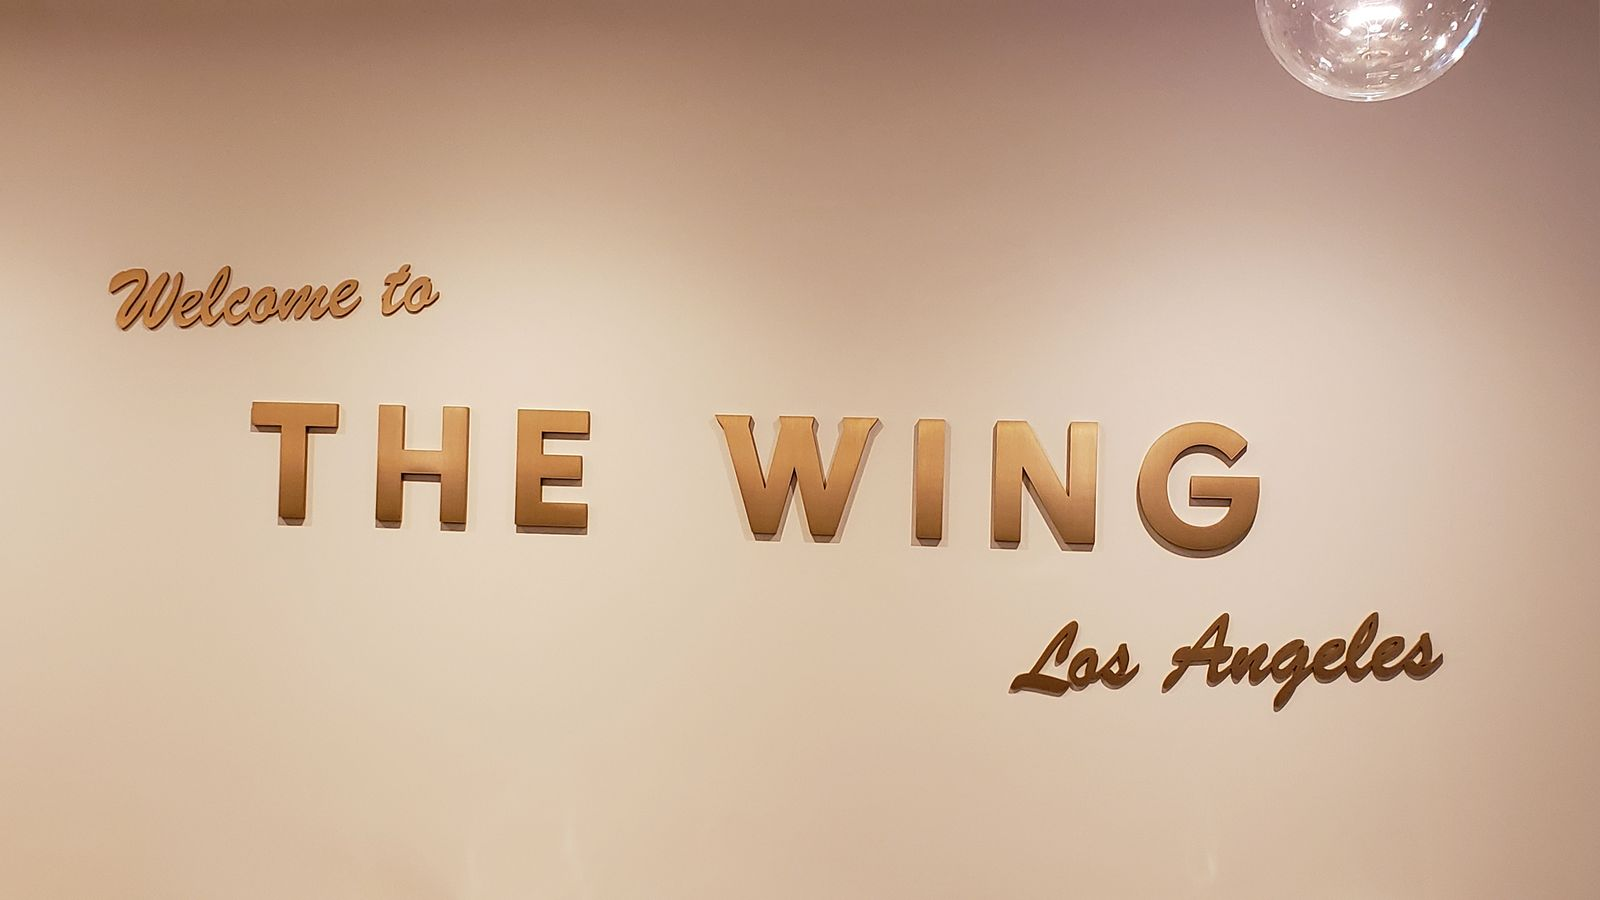 The Wing 3d acrylic letters painted in gold color with Welcome to The Wing Los Angeles message for office lobby branding